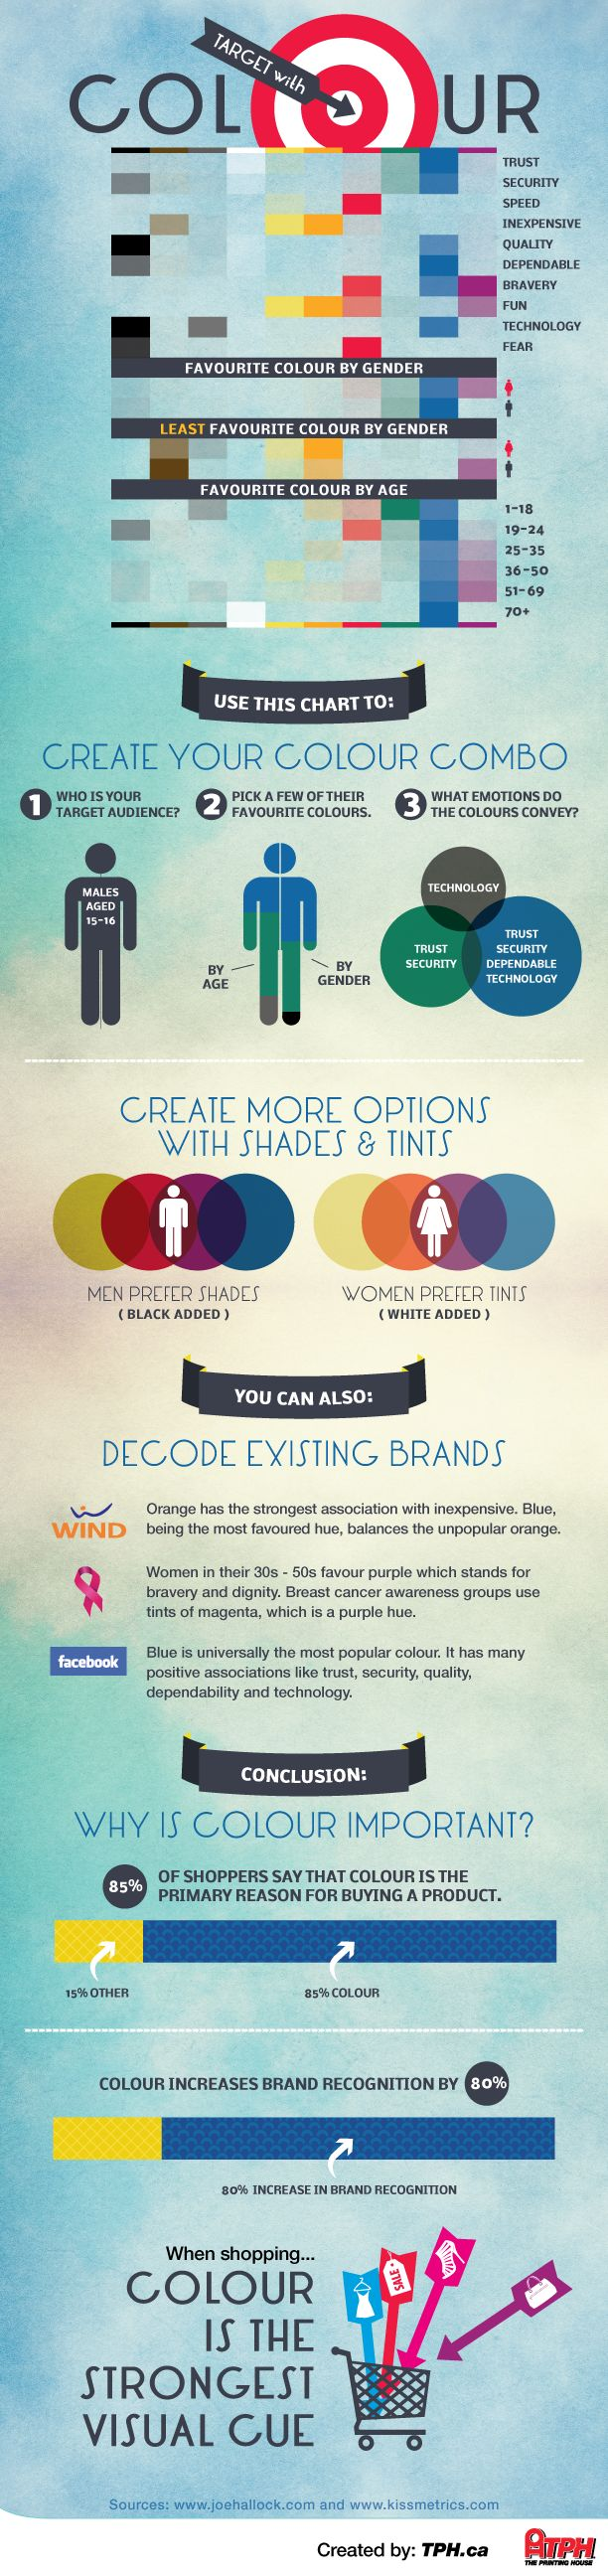 How Color Can Impact Your Business | #Infographic